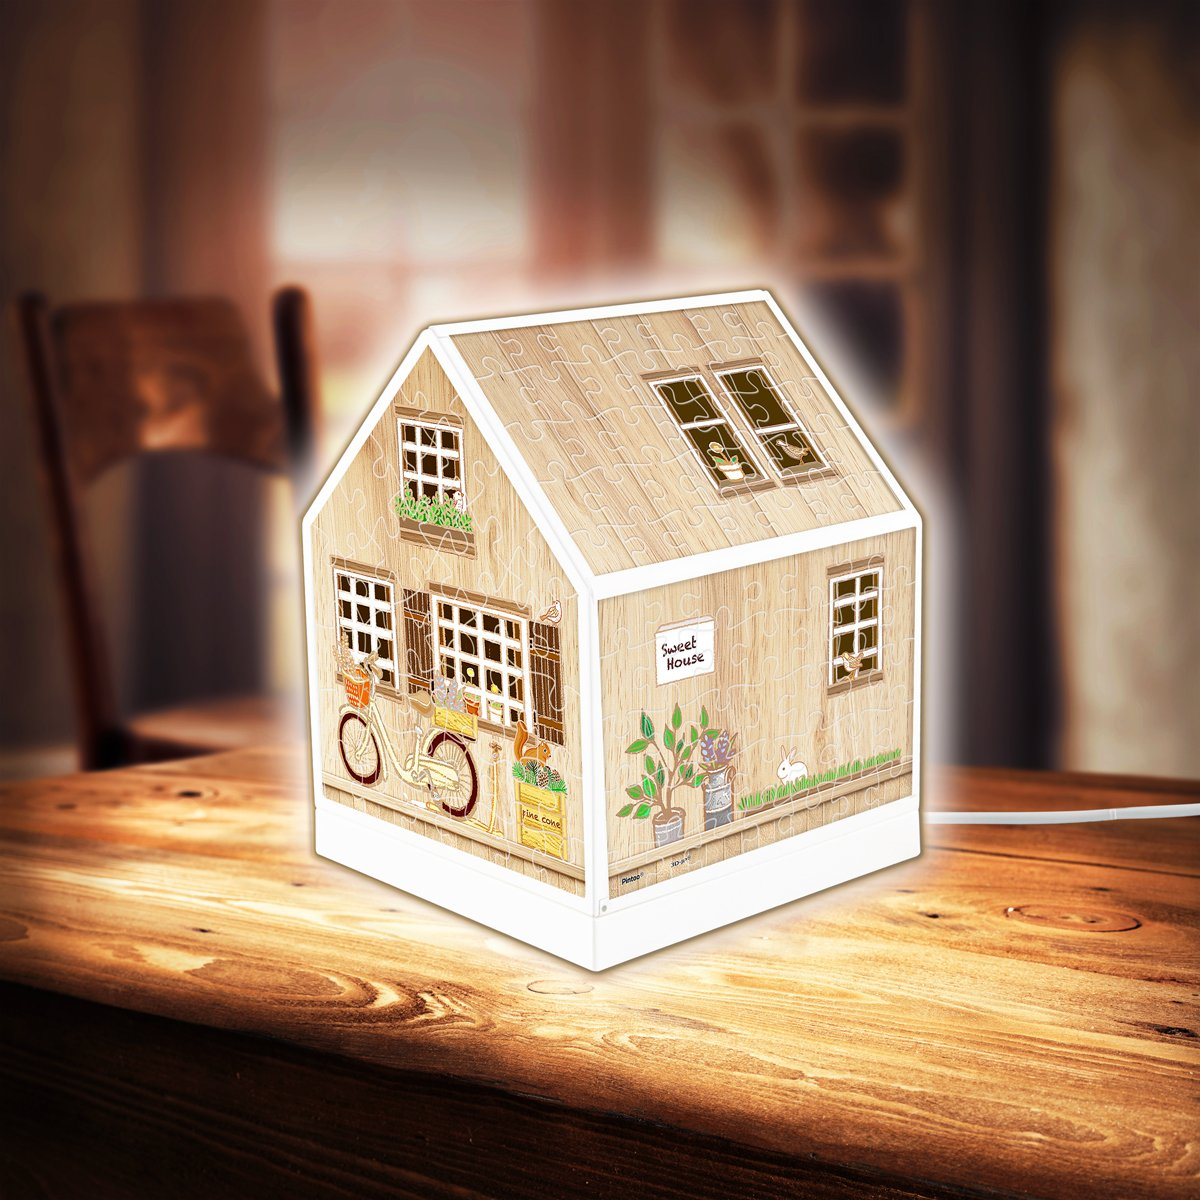 puzzle-3d-house-lantern-little-wooden-cabin